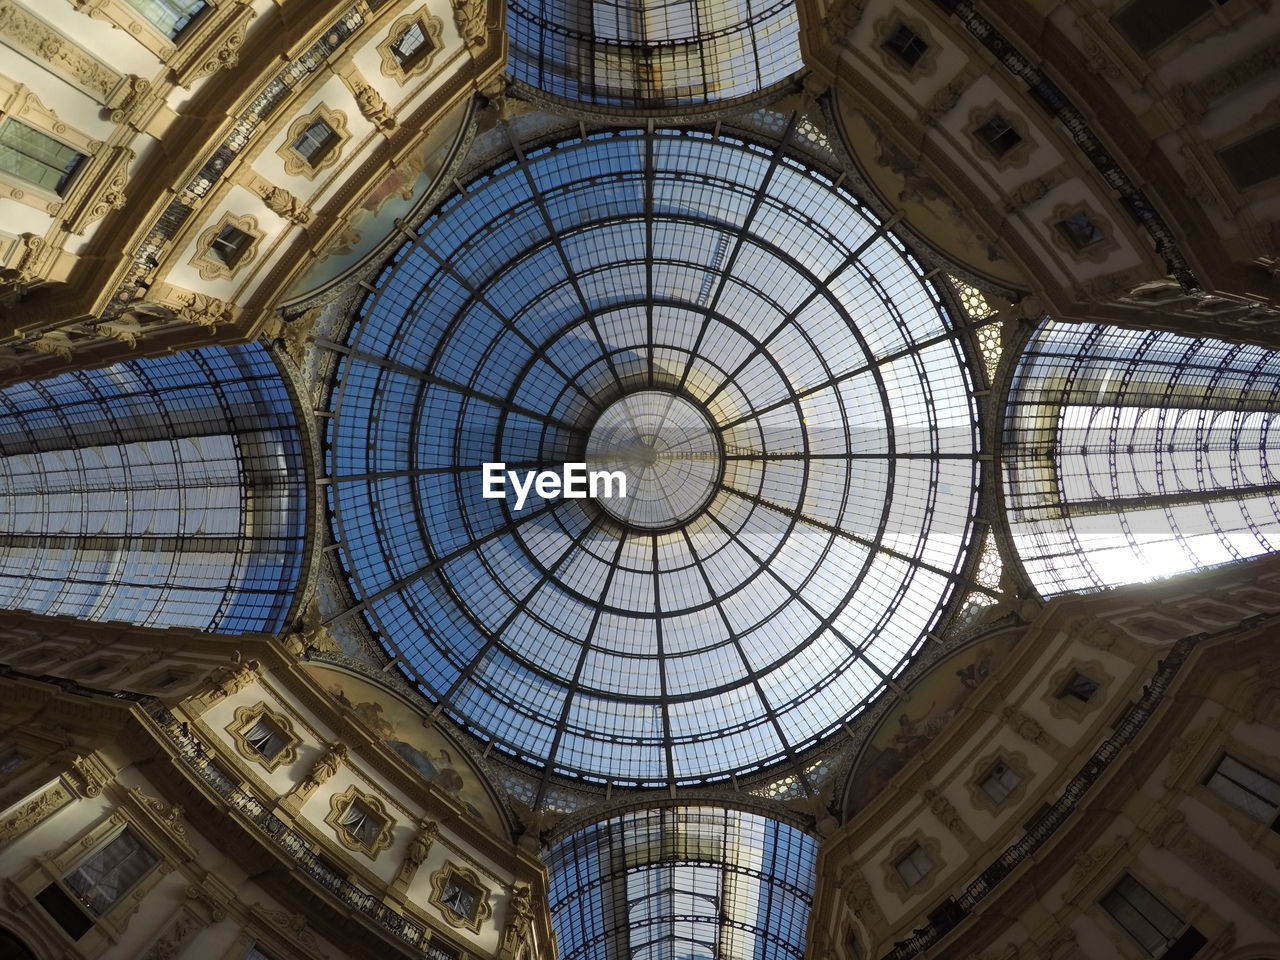 architecture, ceiling, built structure, low angle view, dome, indoors, no people, pattern, glass - material, cupola, architecture and art, history, day, travel destinations, the past, architectural feature, directly below, skylight, glass, ornate